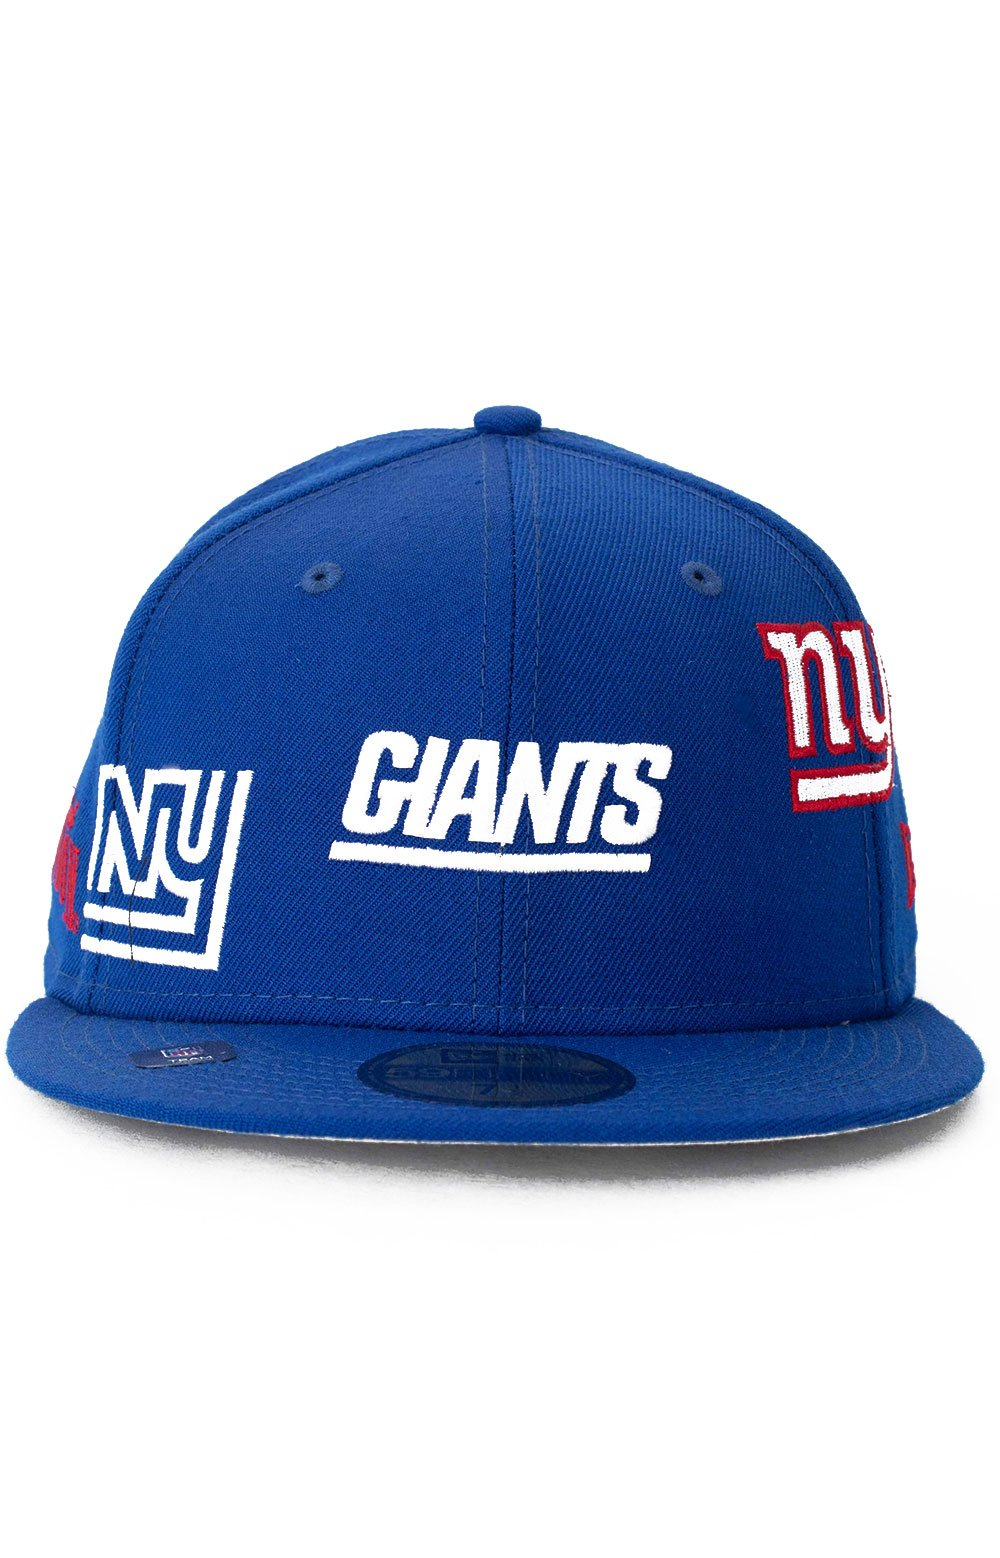 NFL Elements 59Fifty Fitted Hat - New York Giants  2